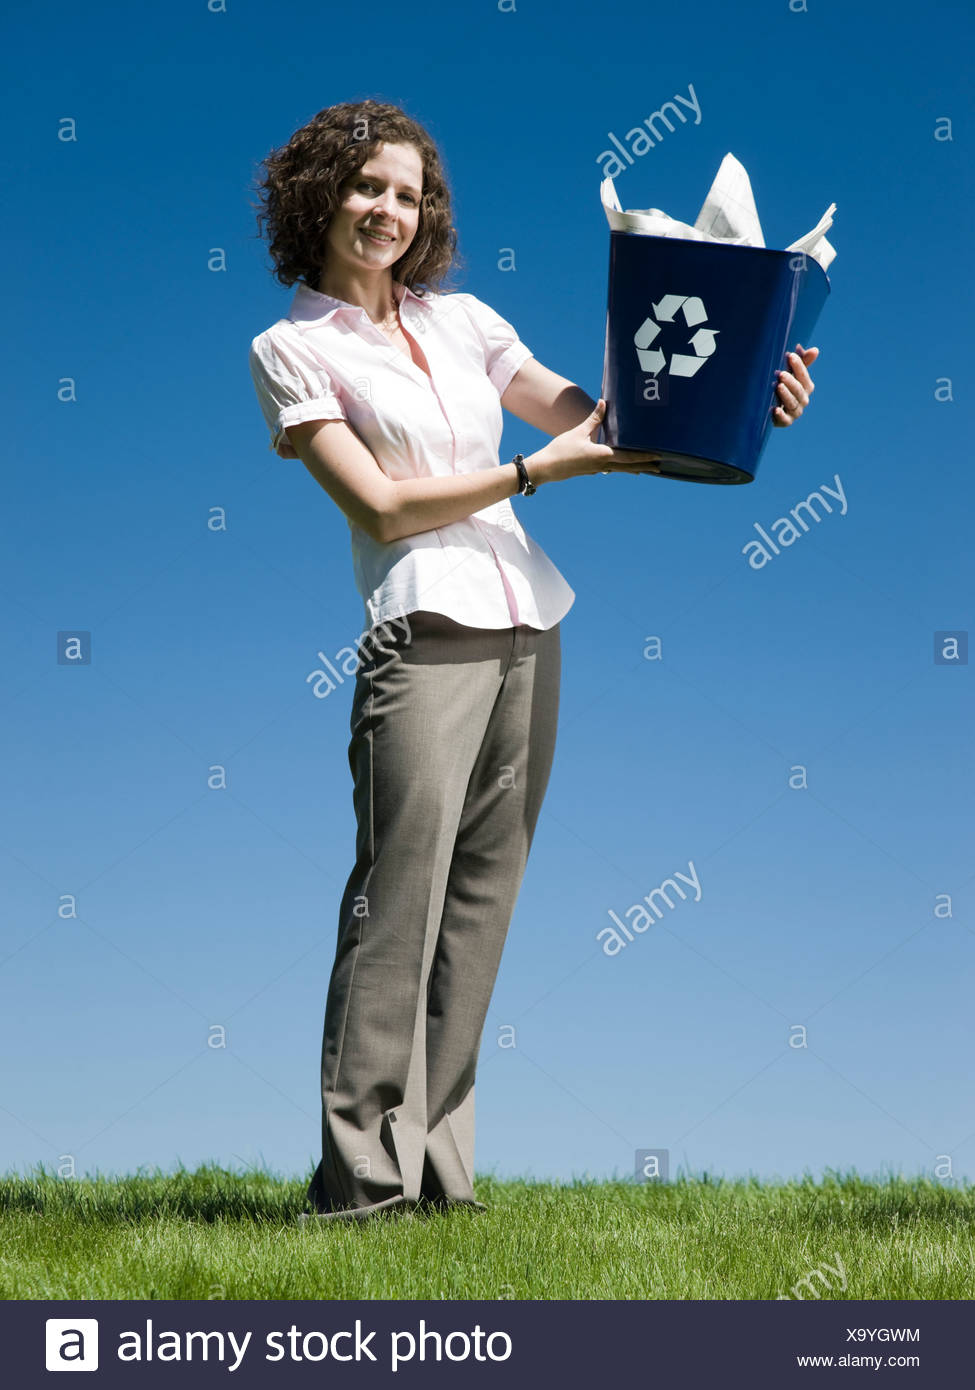 businesswoman holding a recycling bin - Stock Image